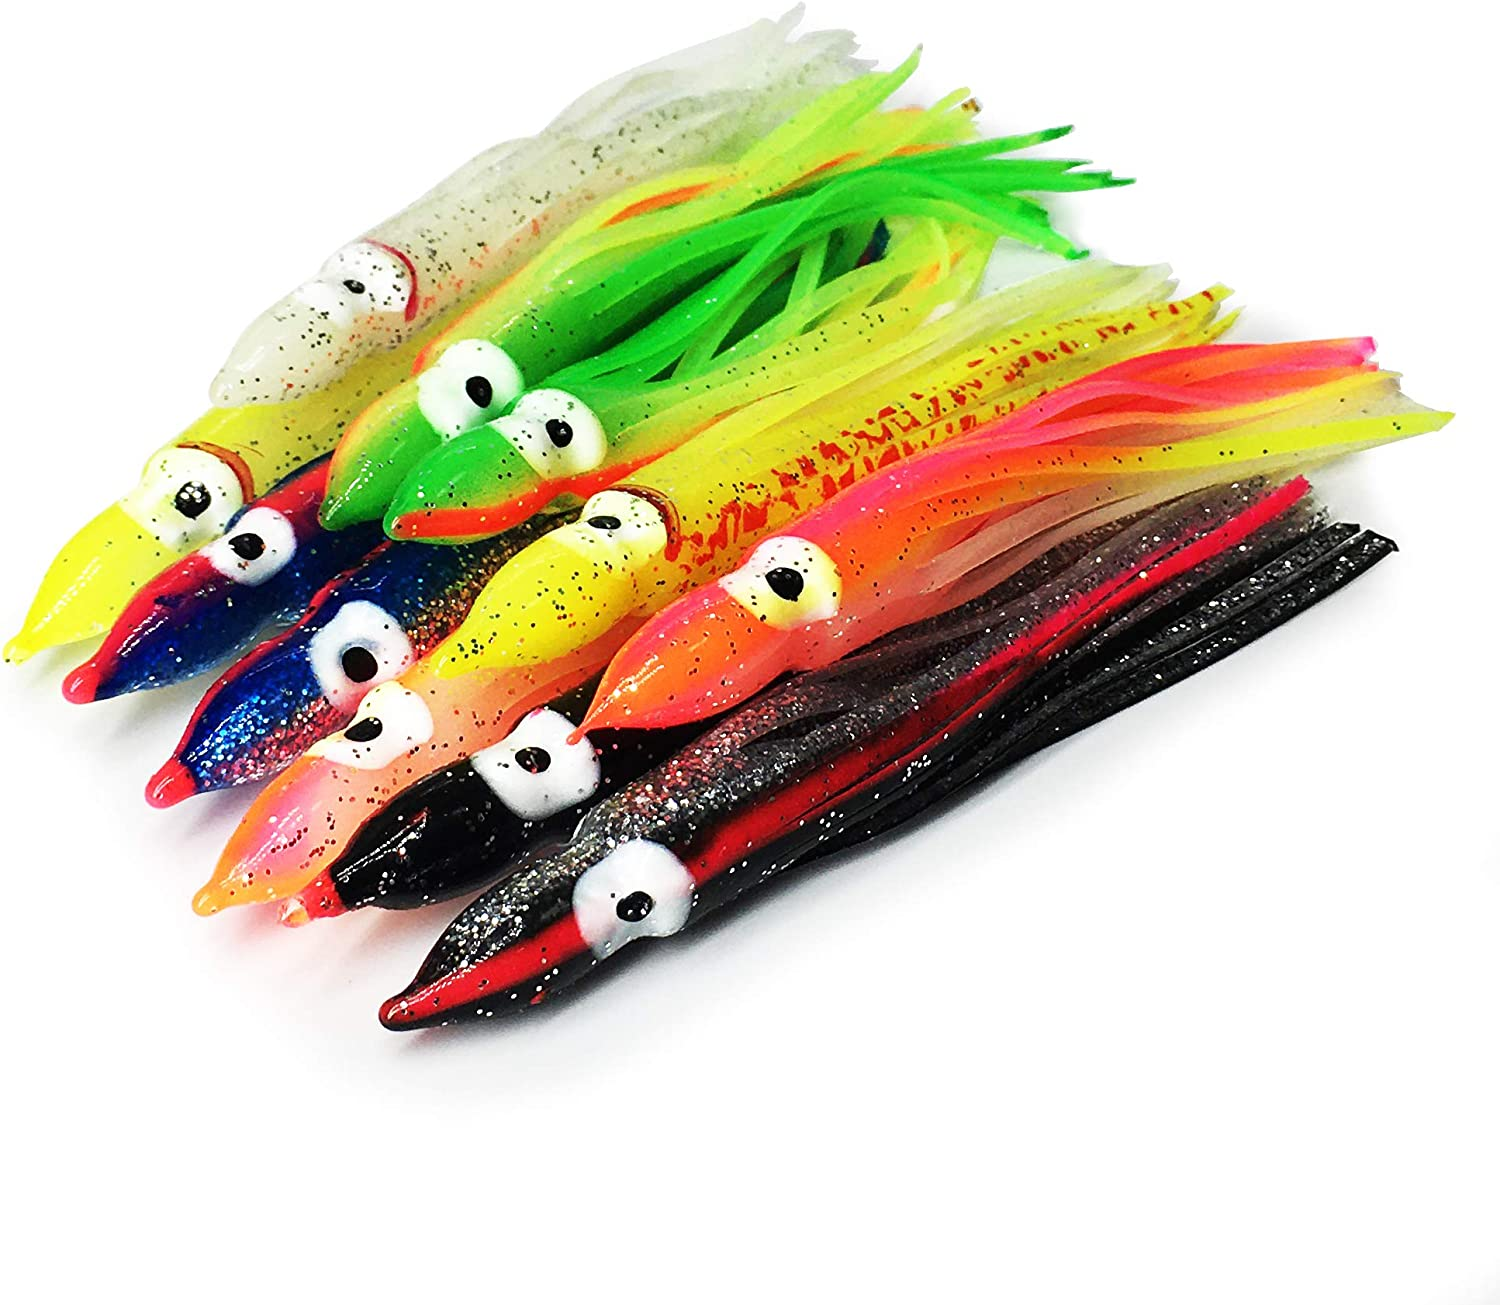 Details about  /Squid Skirt 12in Fishing Lure 4 PACK Hoochies Bait Saltwater Soft Lure FREE SHIP